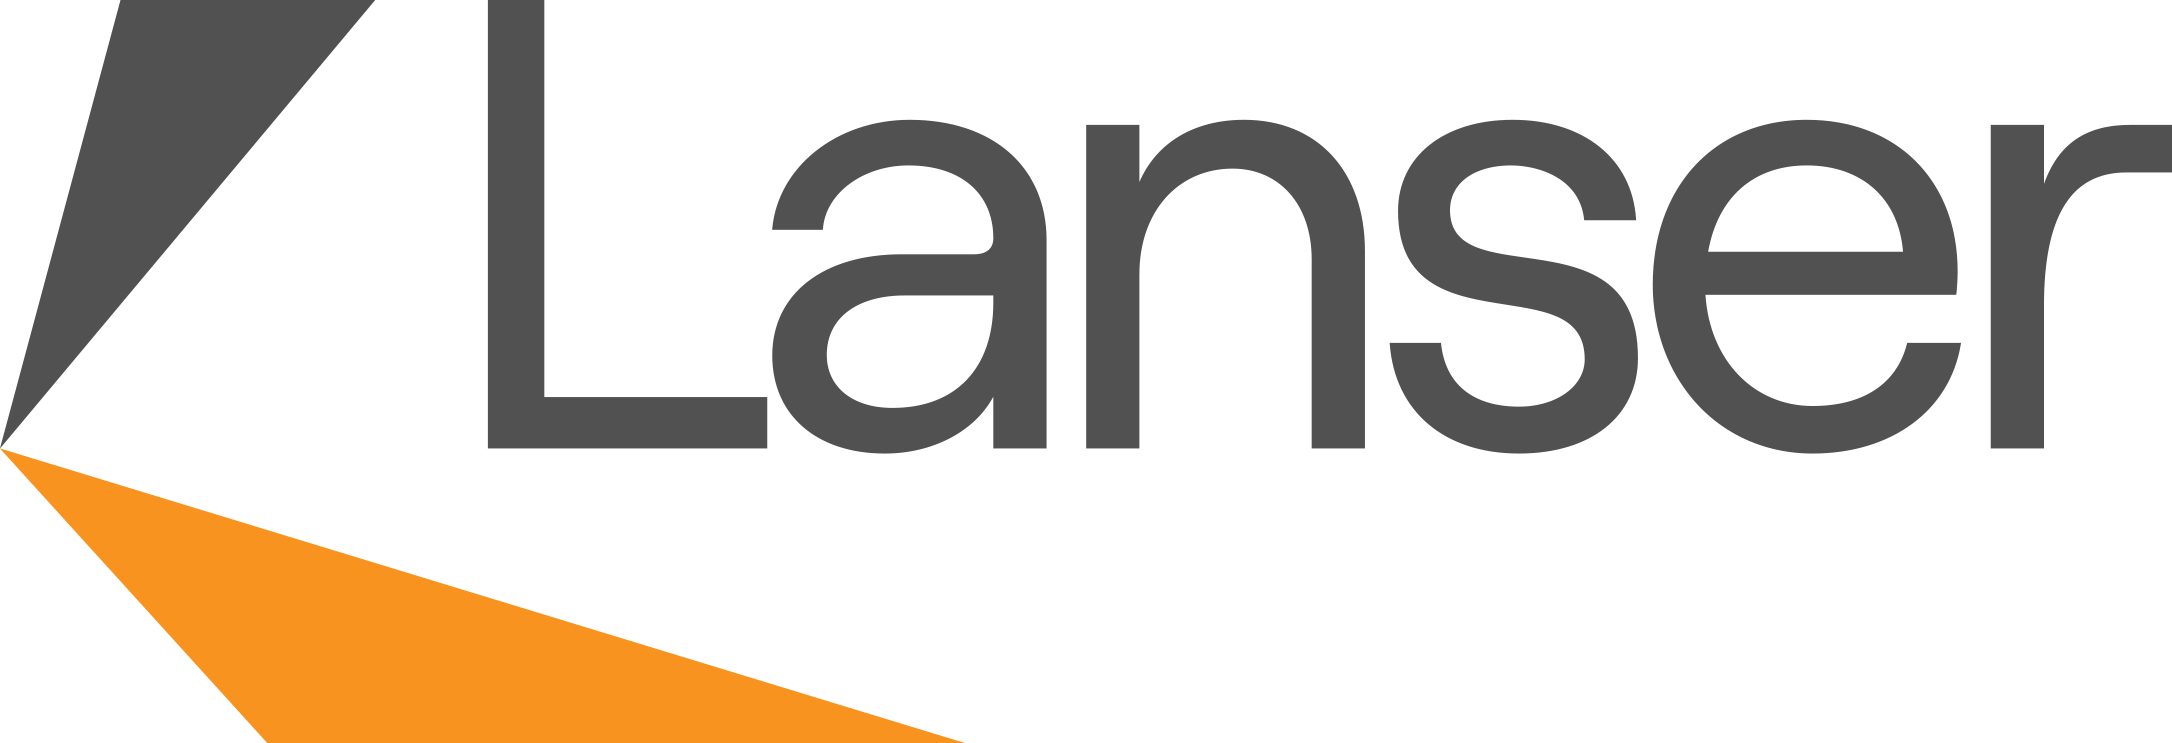 At LANSER, we have a simple philosophy: to build communities that are better by design, deliver a better quality of life for our customers, and enrich the South Australian community at large.